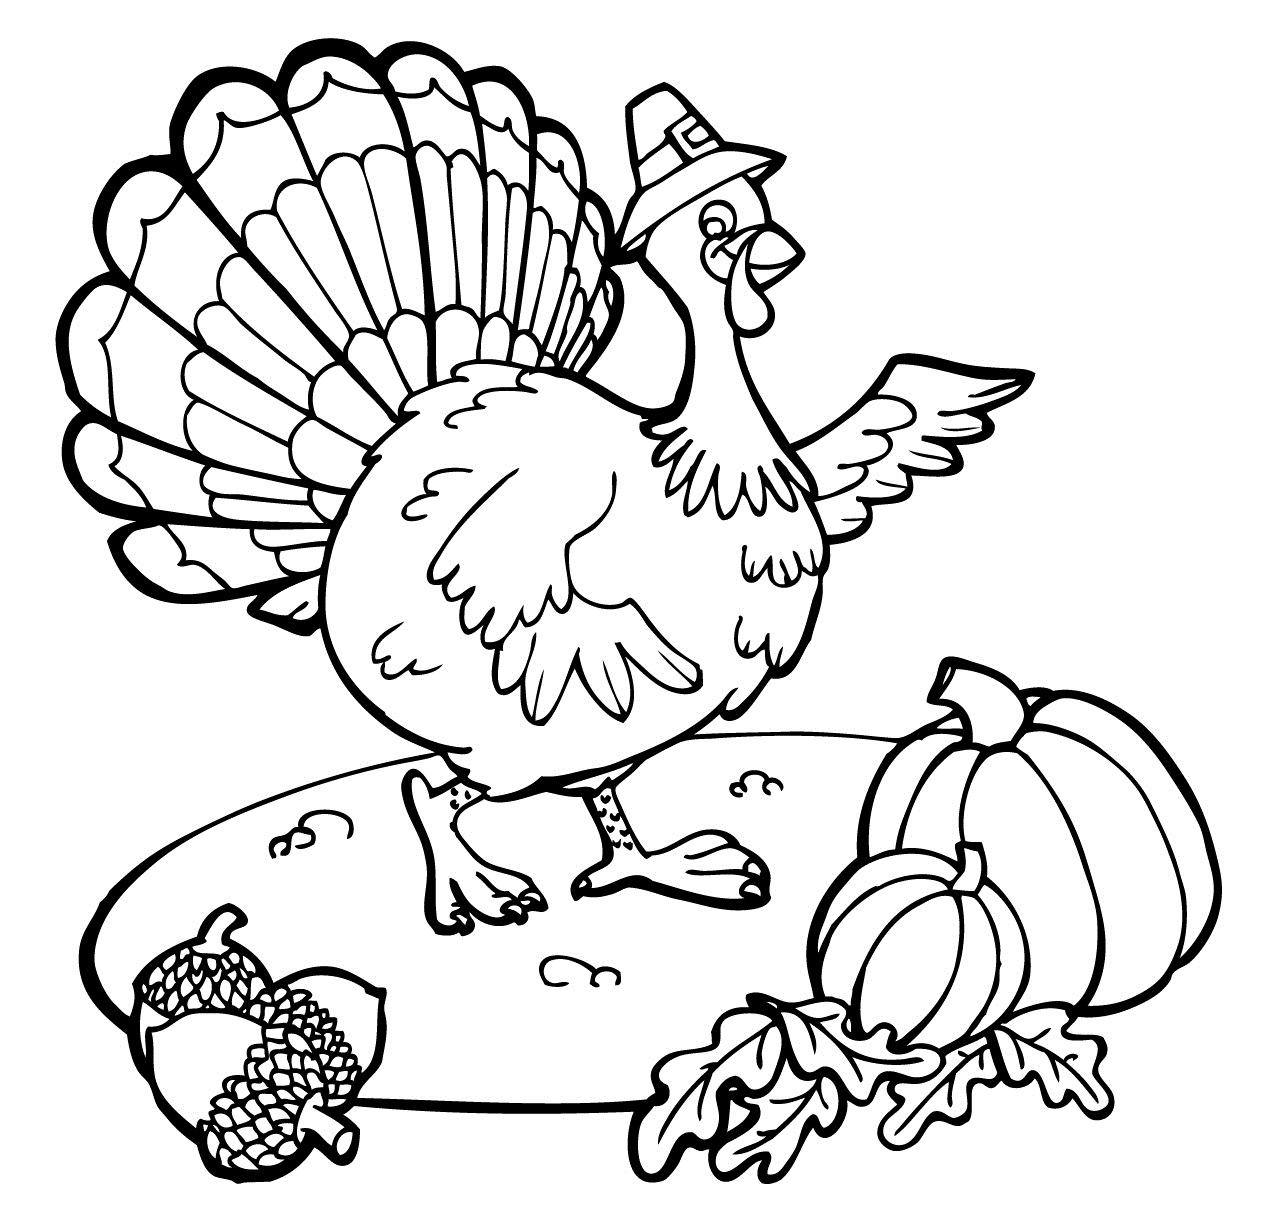 Thanksgiving Color Pages to Print 3161 1405—986 to Print Of Back to School Coloring Pages for Kindergarten 1480—2168 Printable